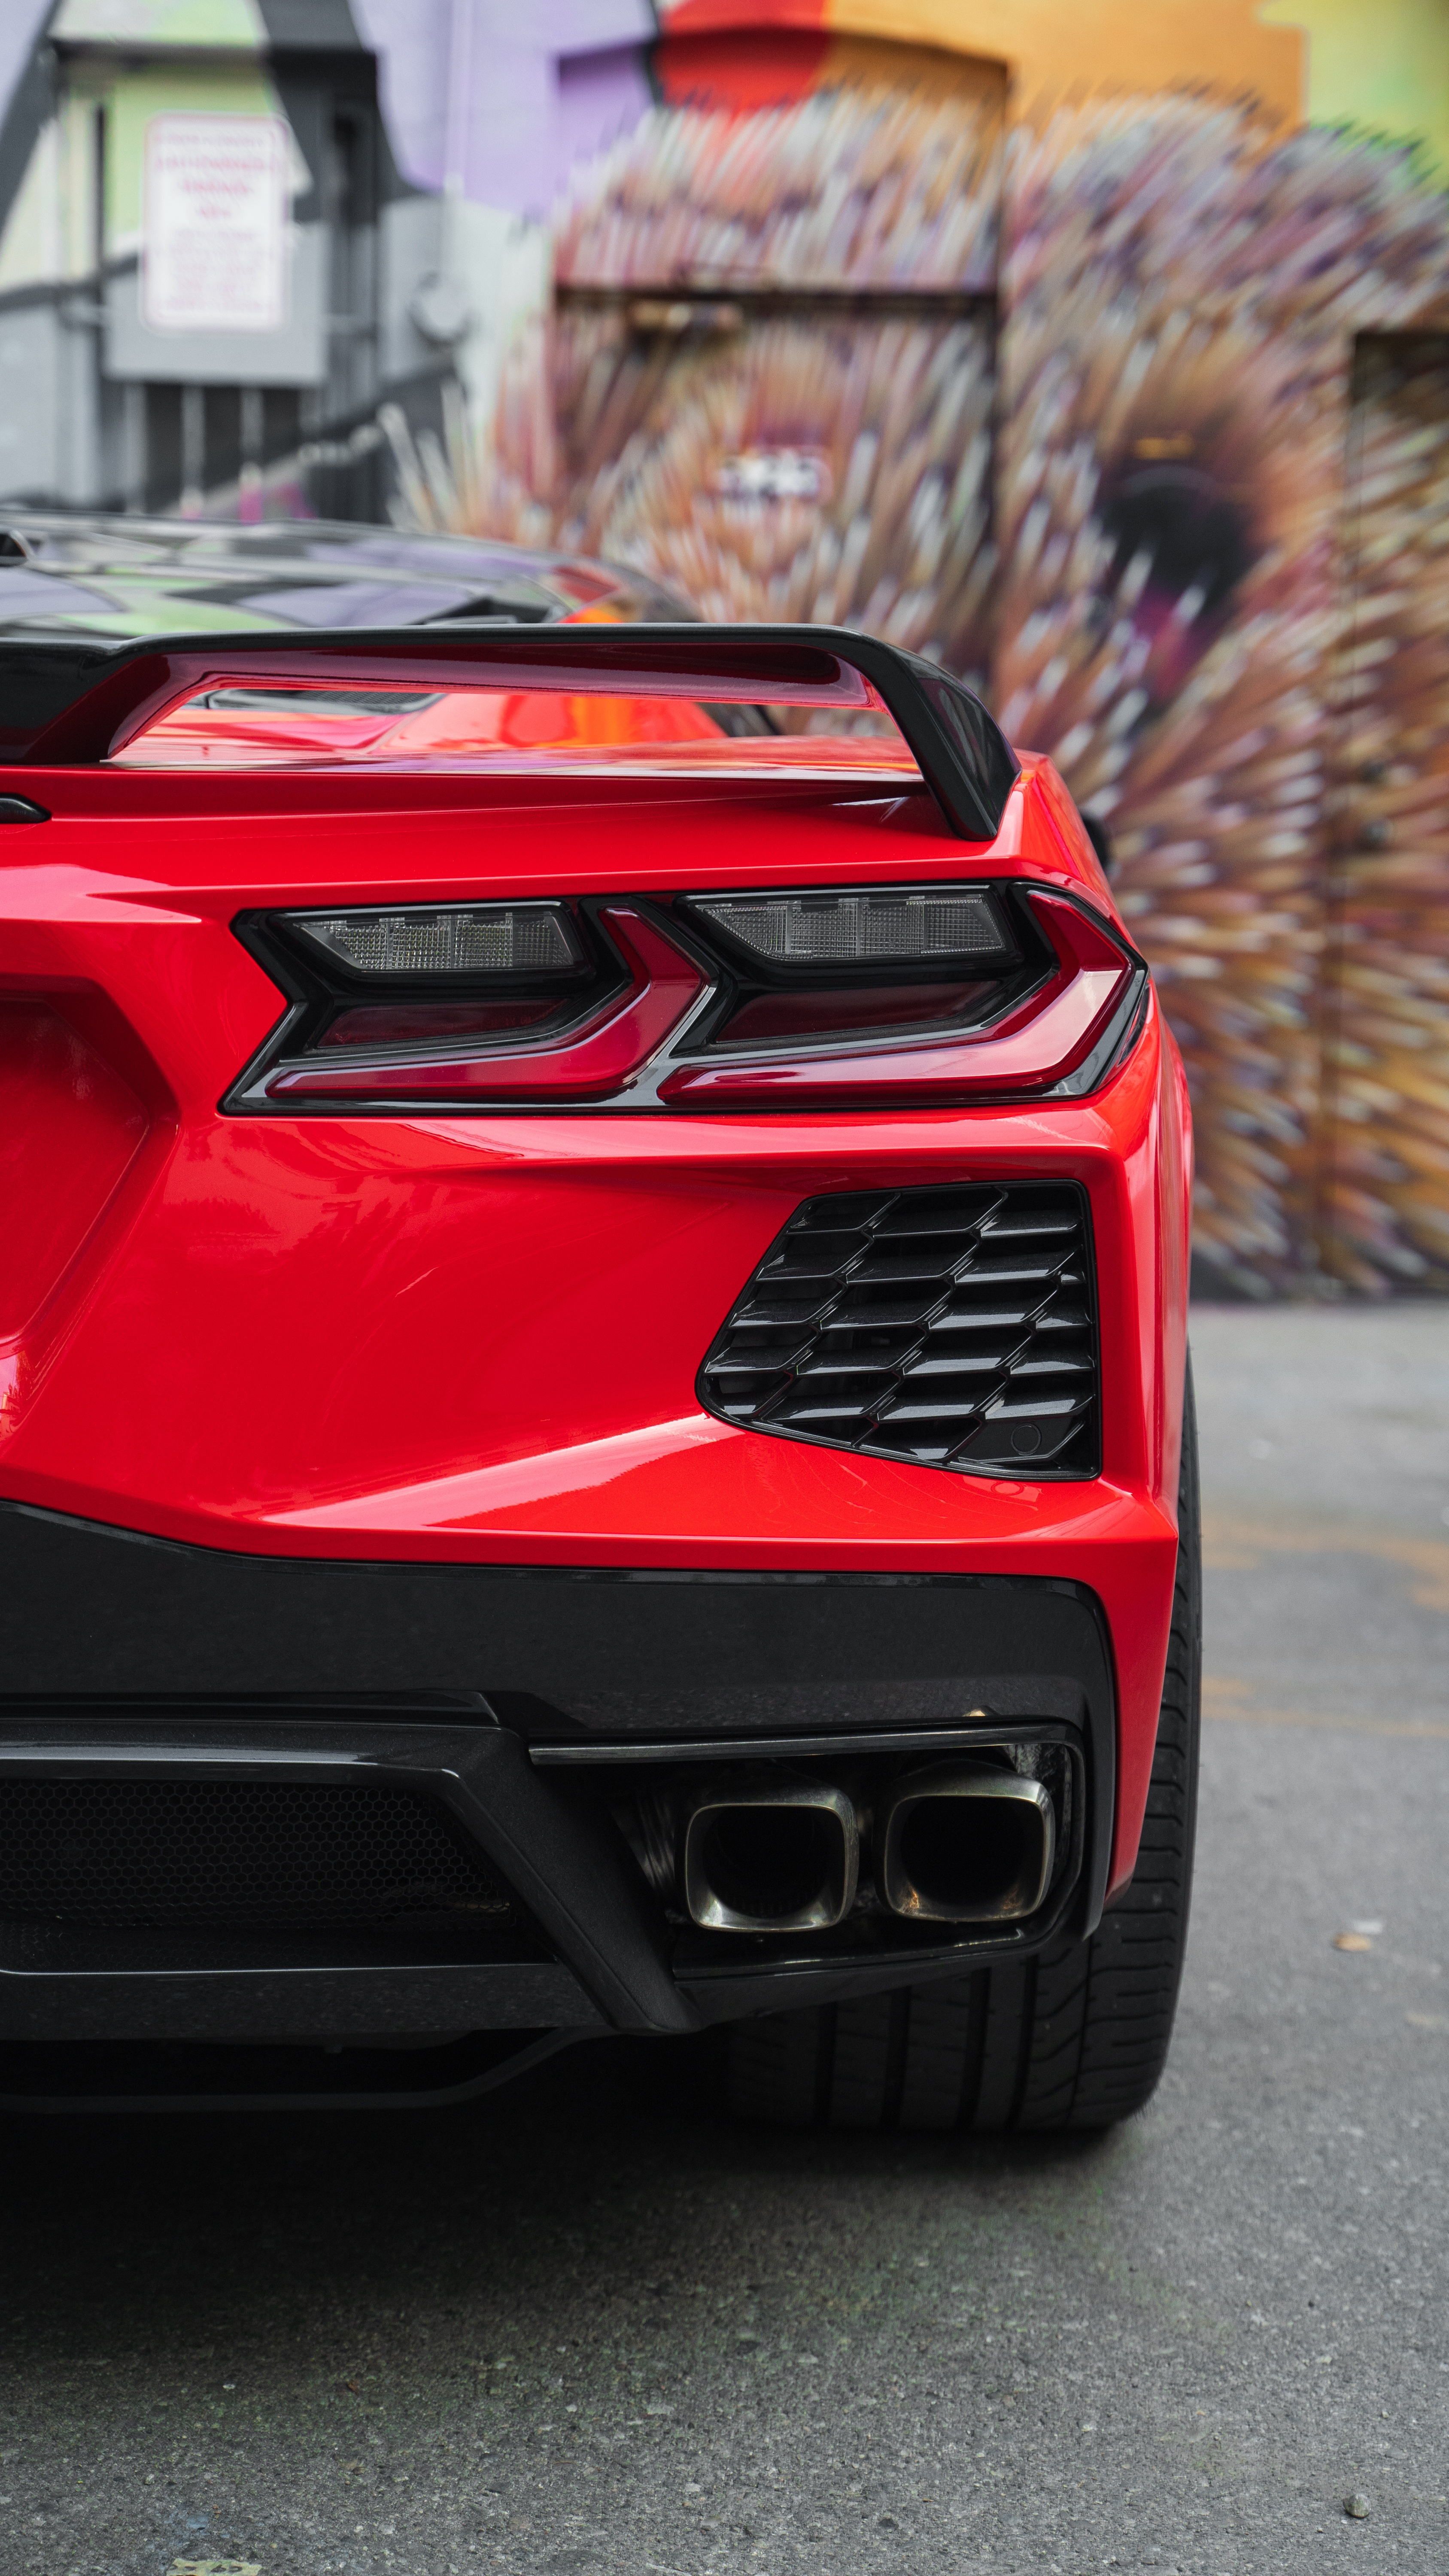 C8 Corvette Hennessey Stainless Steel Cat-back Exhaust